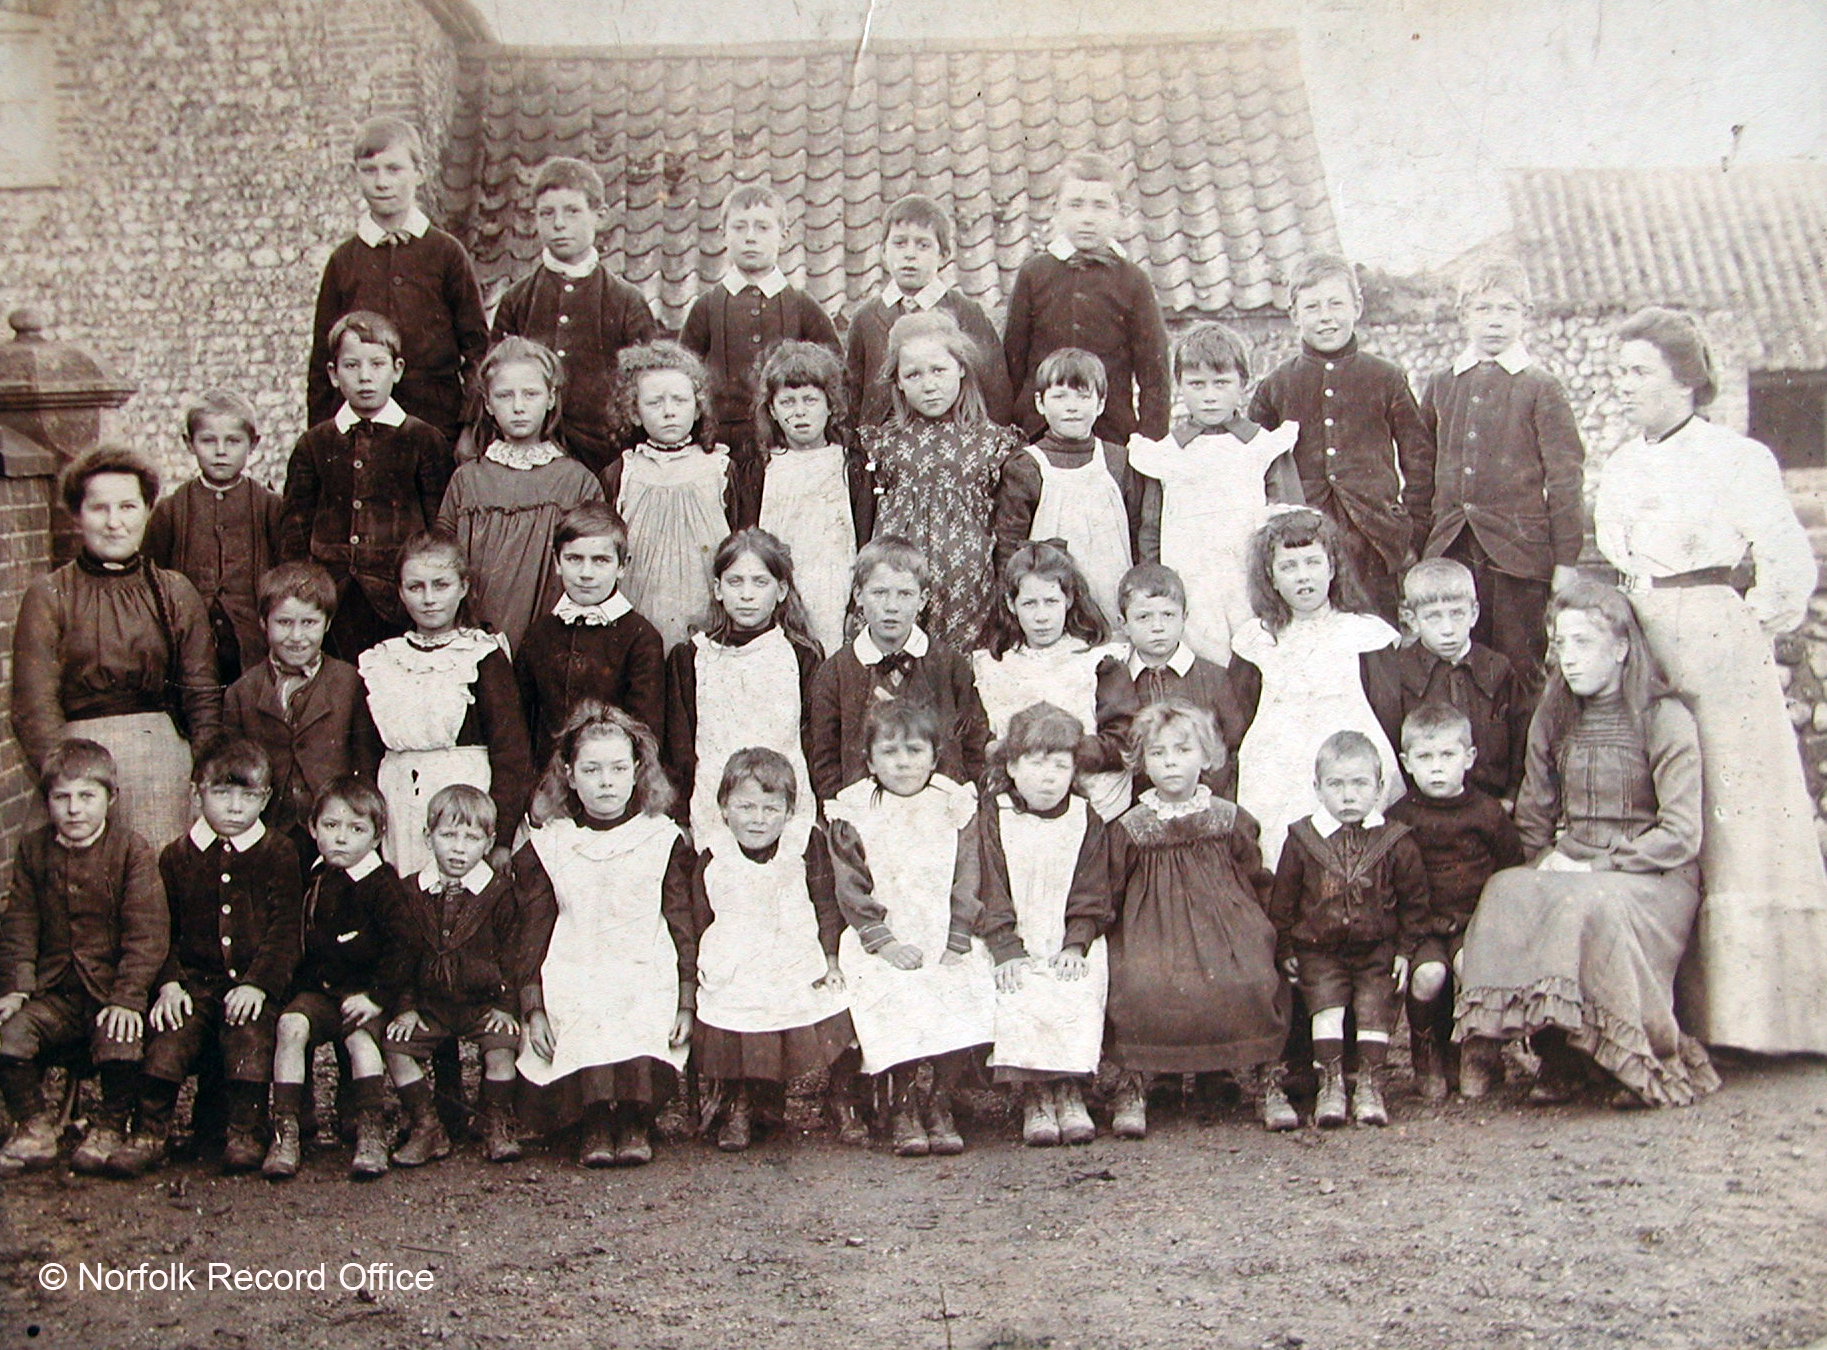 This photograph shows both boys and girls. Judging from the wide age range this is probably the whole school. The monitress on the left was May Twiddy, the teacher on the right was Miss Martha Burton. Children included in the photograph are front row: 1. George Barnes, 6. Evelyn Massingham, 7. Ethel...